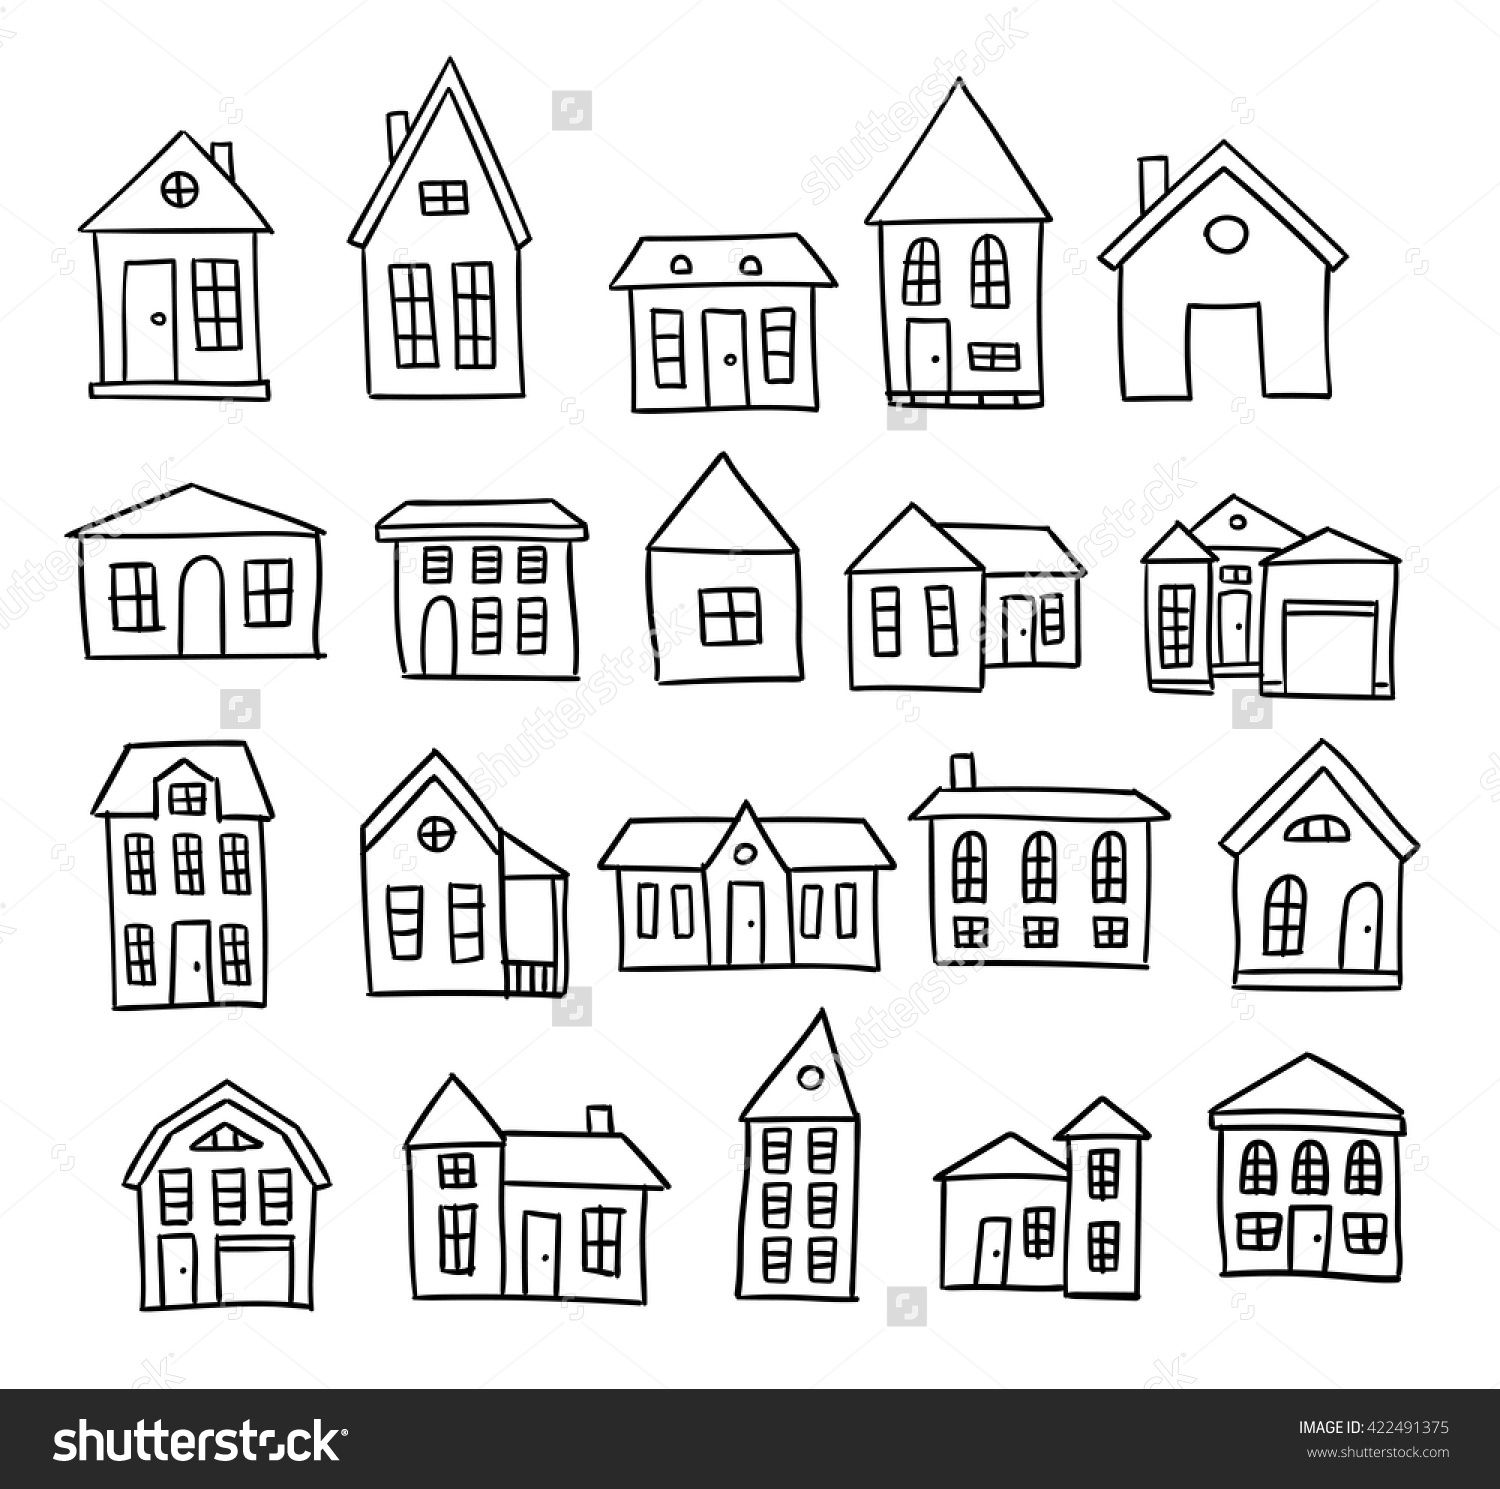 Hand drawn house vector set How to draw hands, House